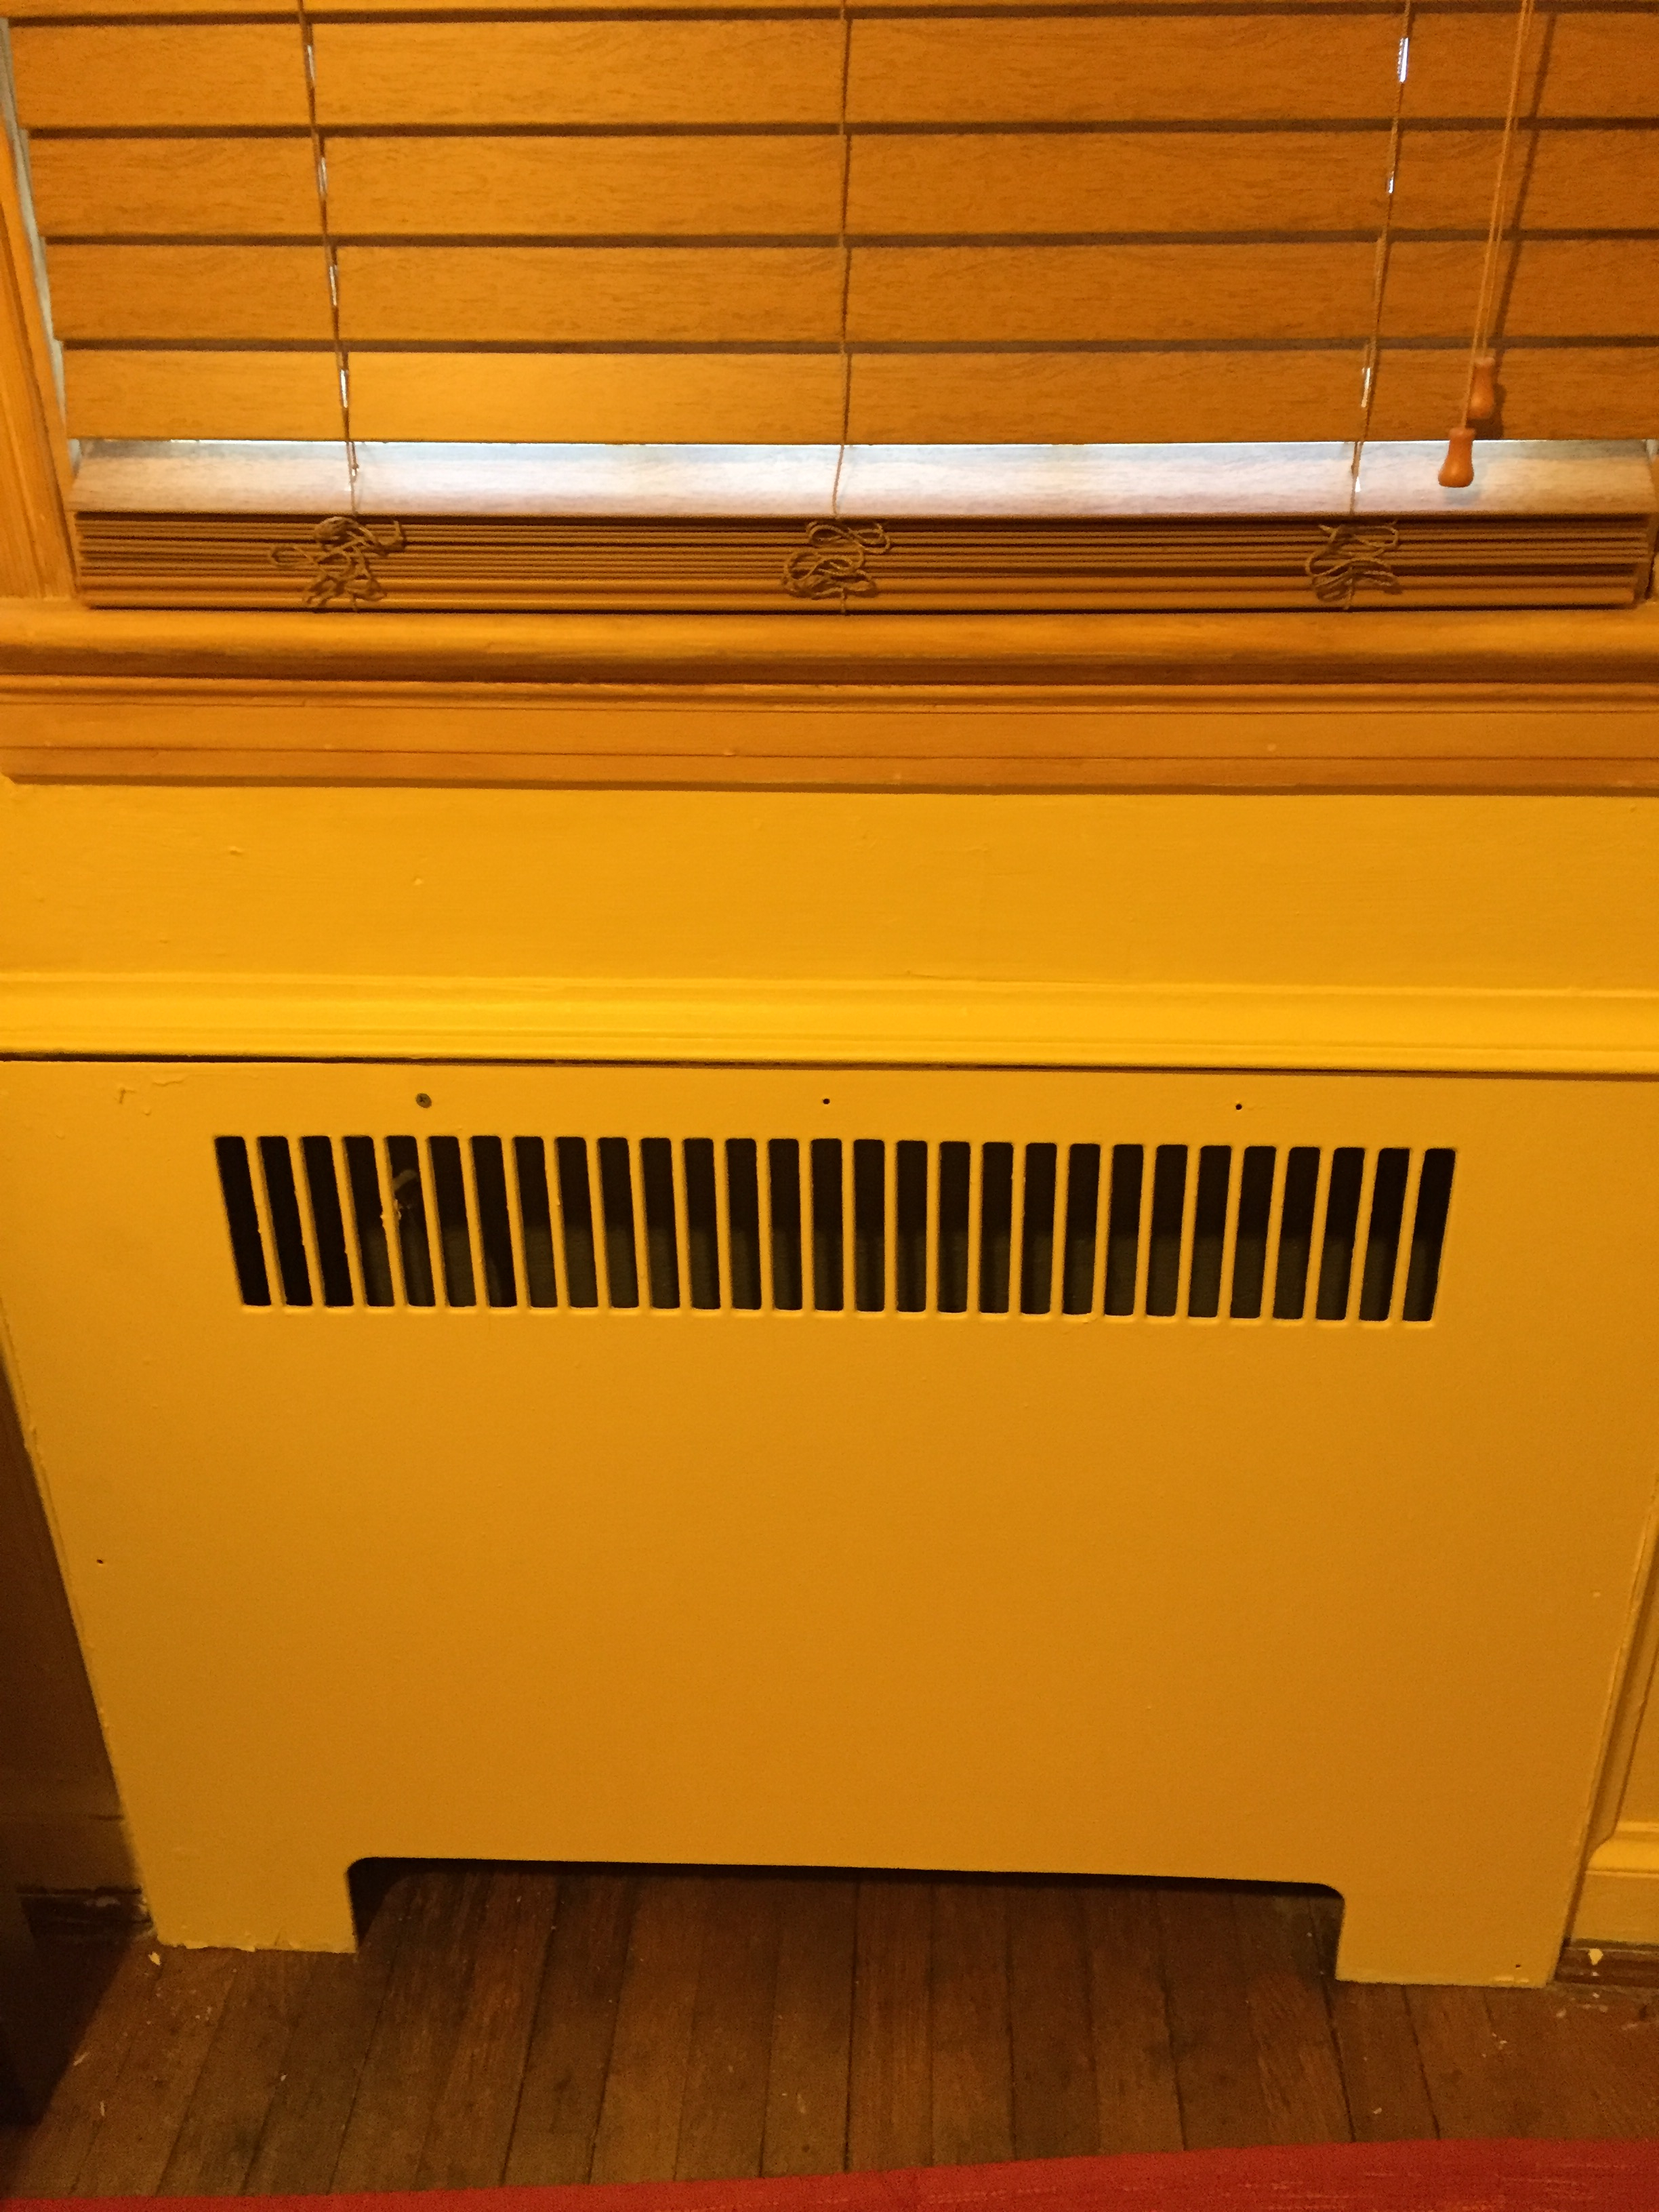 Best heating option for a small room heating help the wall for Room heating options